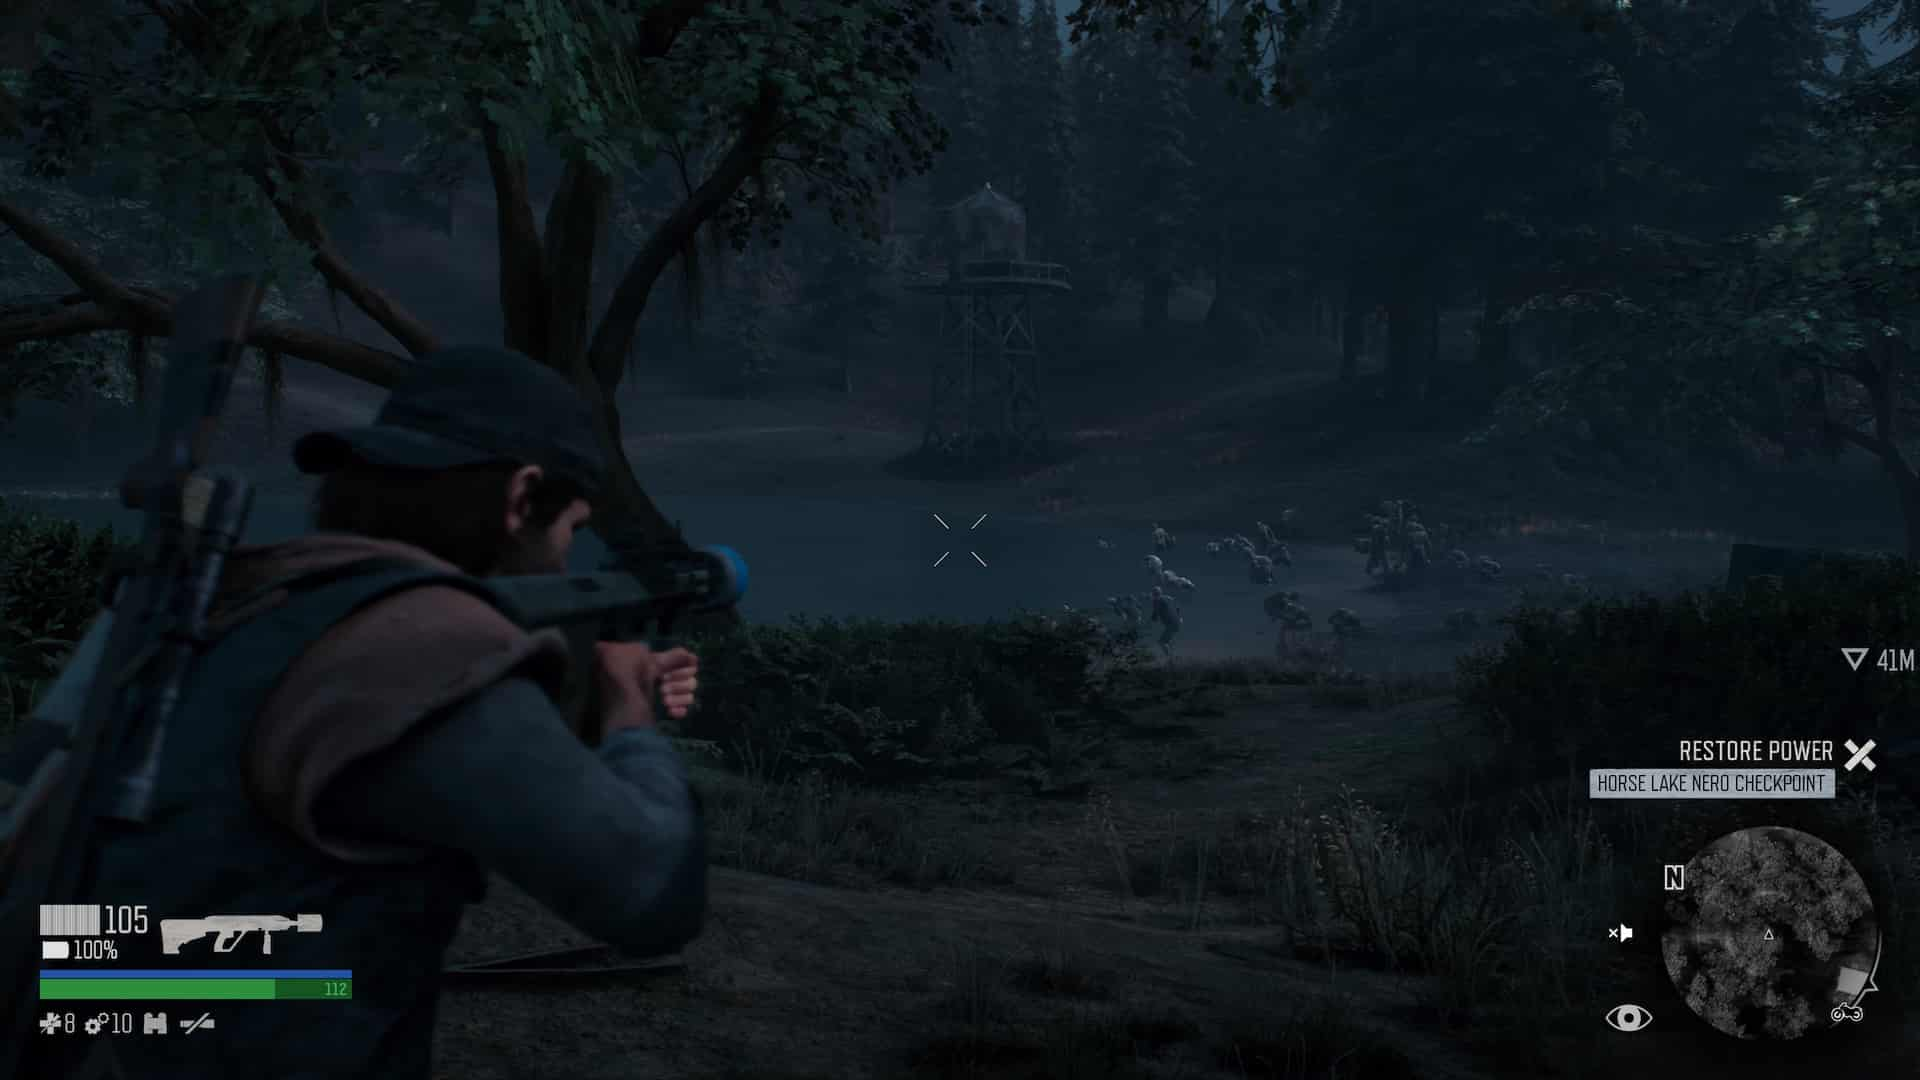 Days Gone Tips Guide - Skills, Weapons, Upgrades, Hordes & More